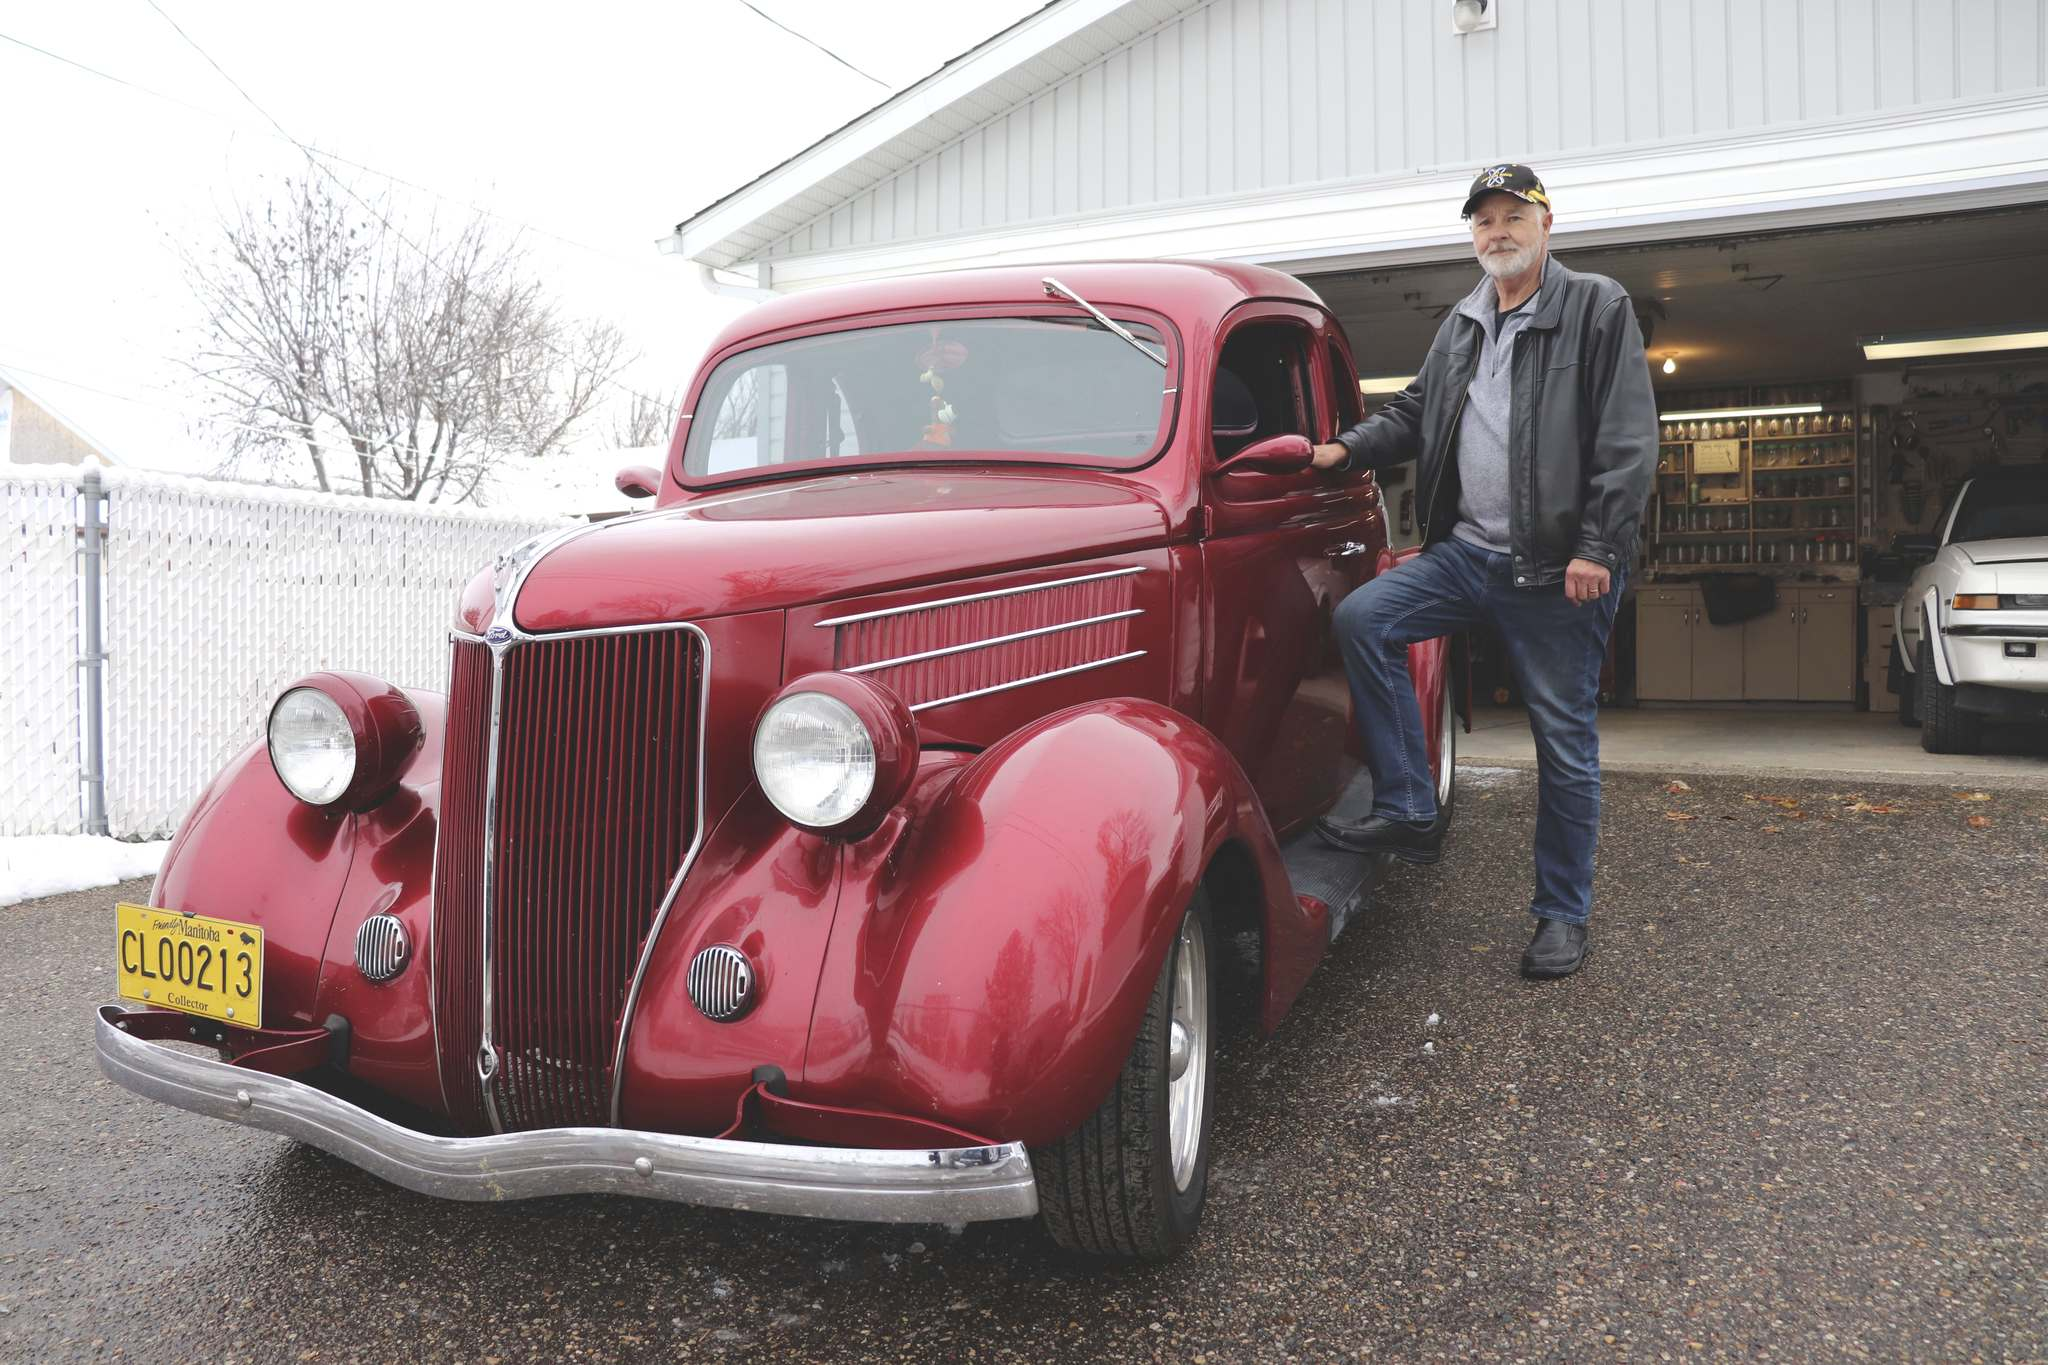 TOP: Brandon resident Roger Plowman poses for a photo next to his 1936 Ford Coupe on Wednesday afternoon. BOTTOM: Roger Plowman gets behind the wheel of his 1936 Ford Coupe alongside Rooty, the A&W Great Root Bear, on Wednesday afternoon. (Photos by Kyle Darbyson/The Brandon Sun)</p></p>